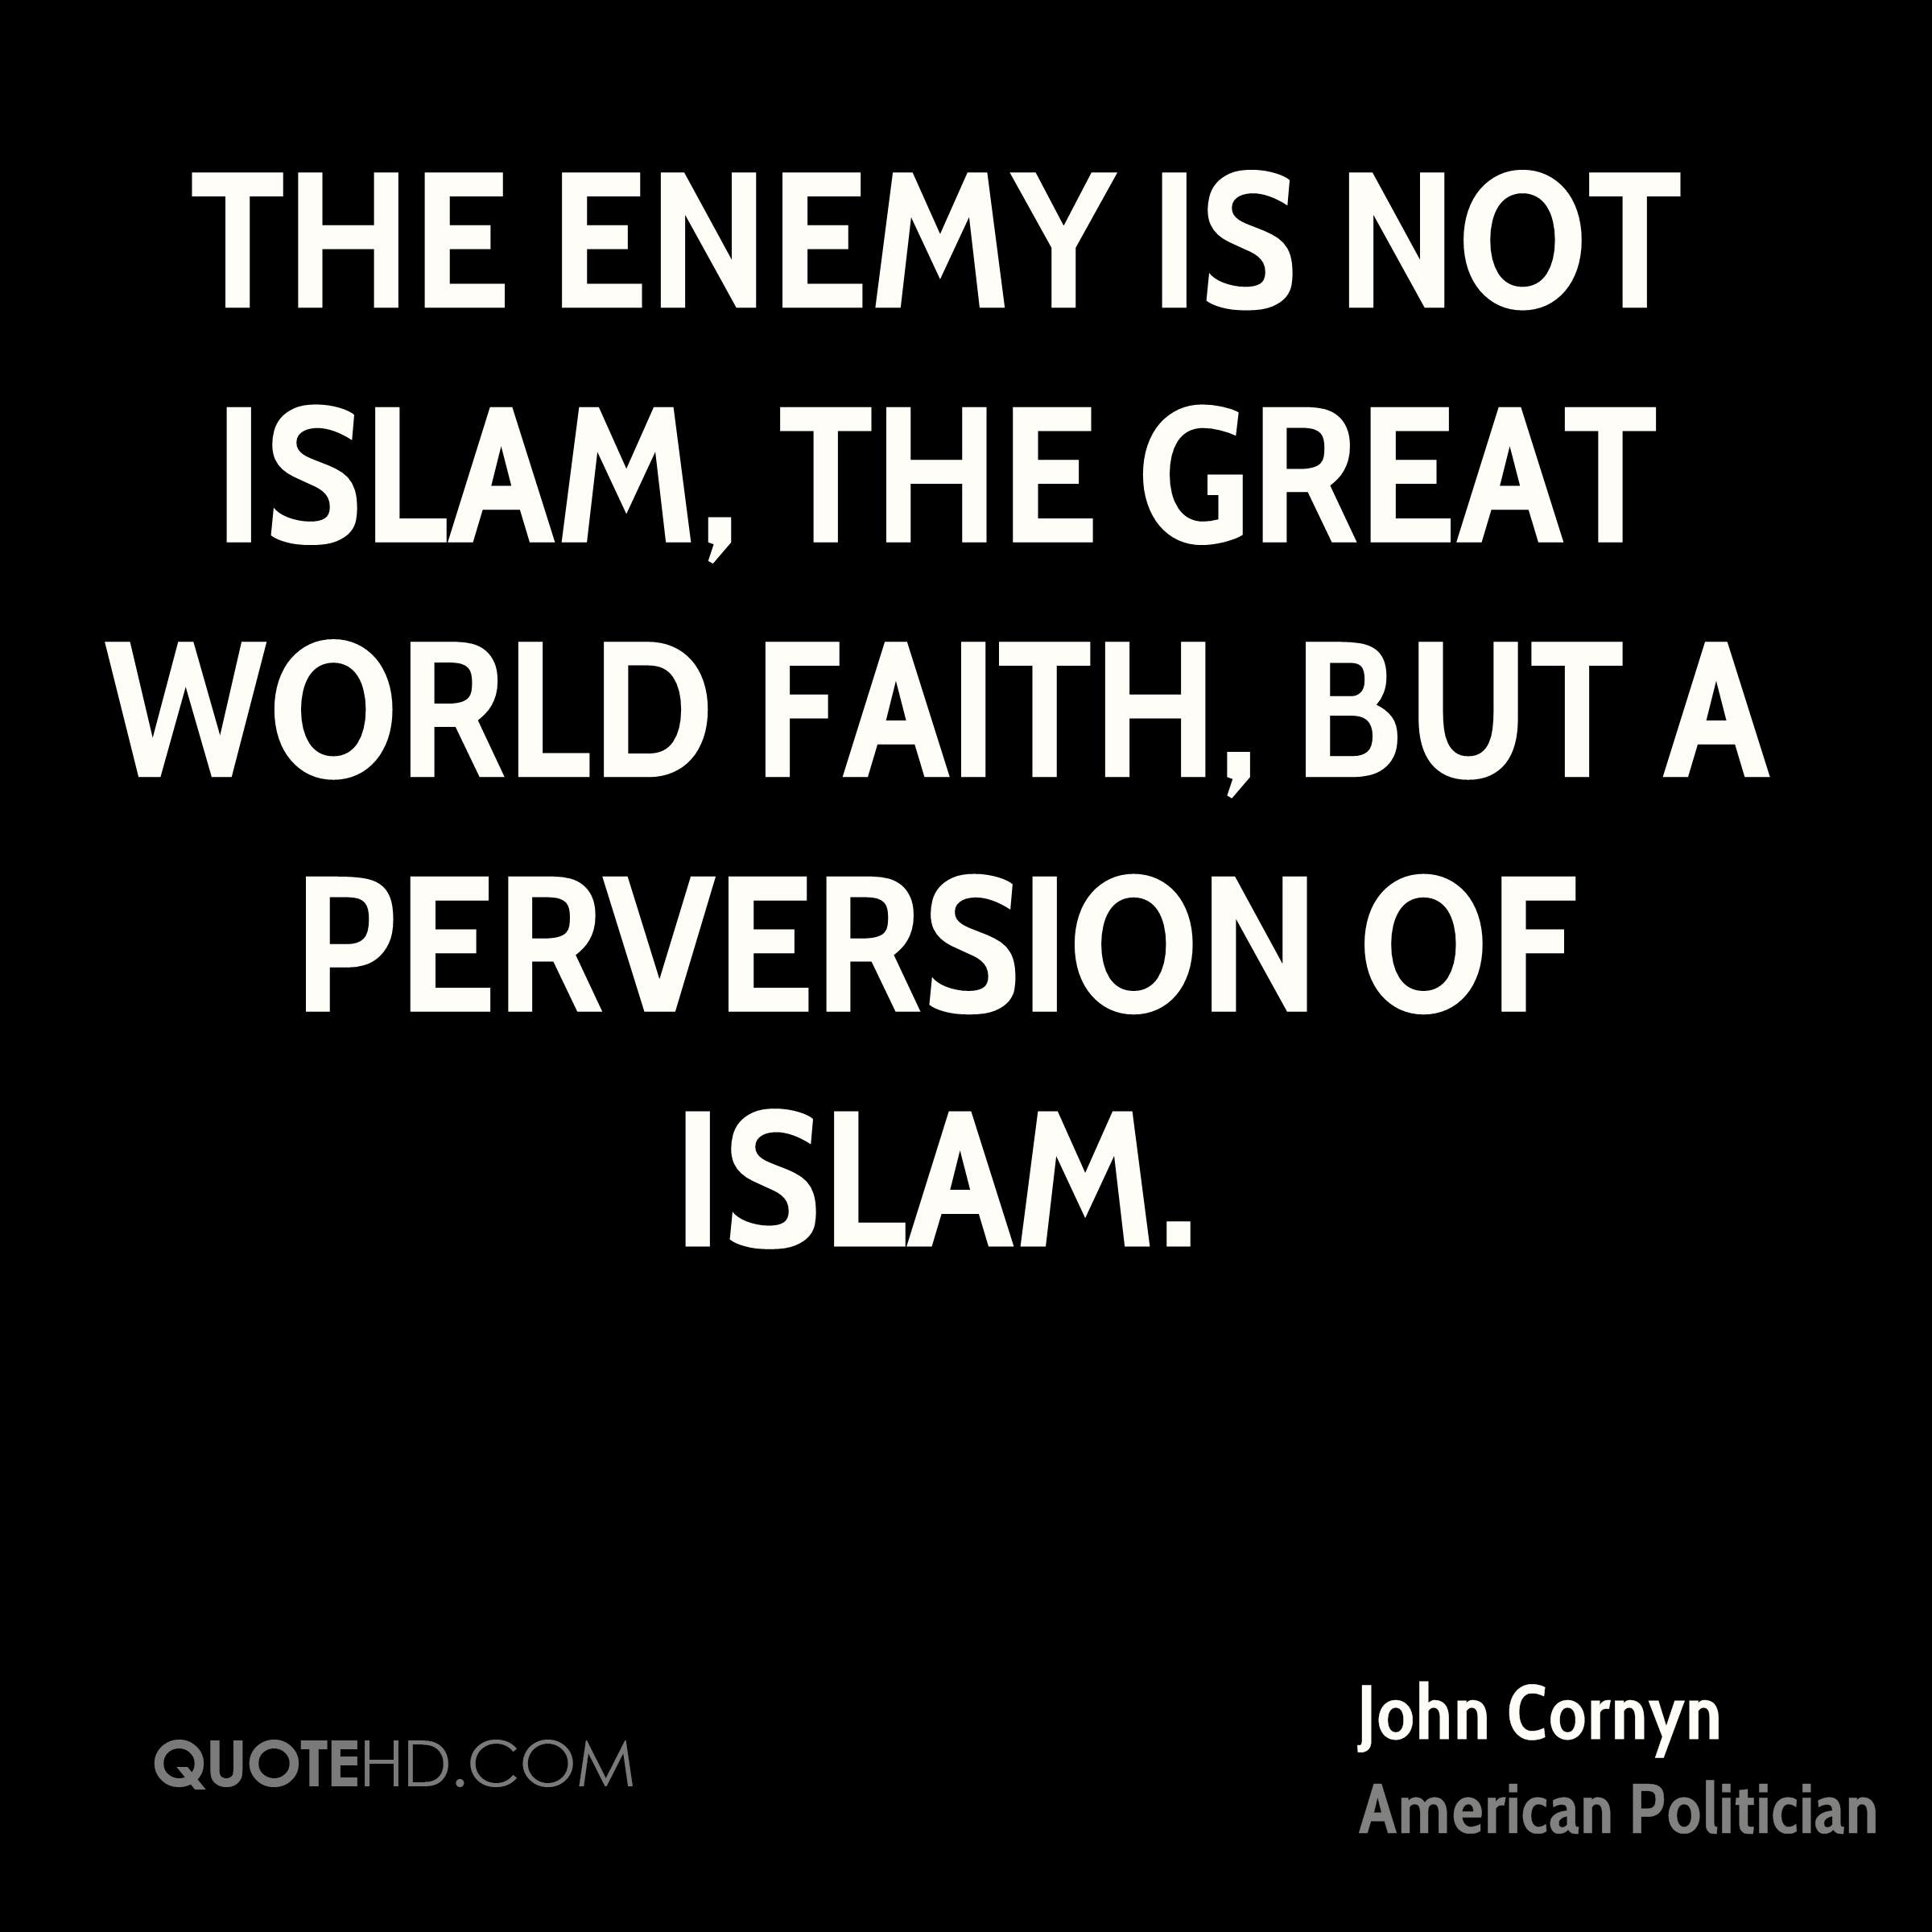 The enemy is not Islam, the great world faith, but a perversion of Islam.